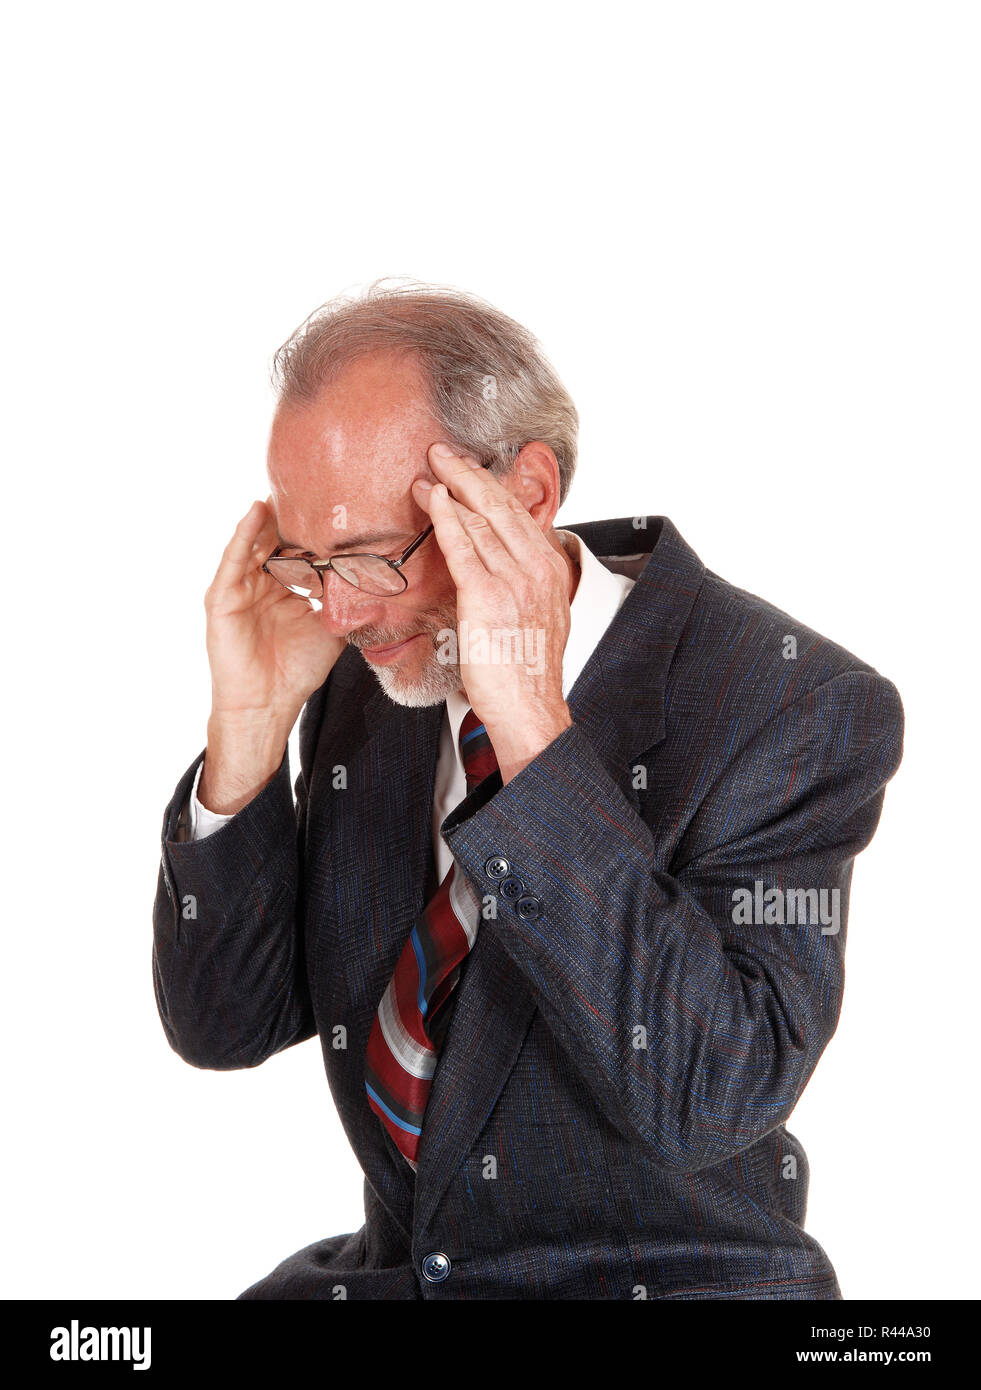 Older man in suit with headache. - Stock Image